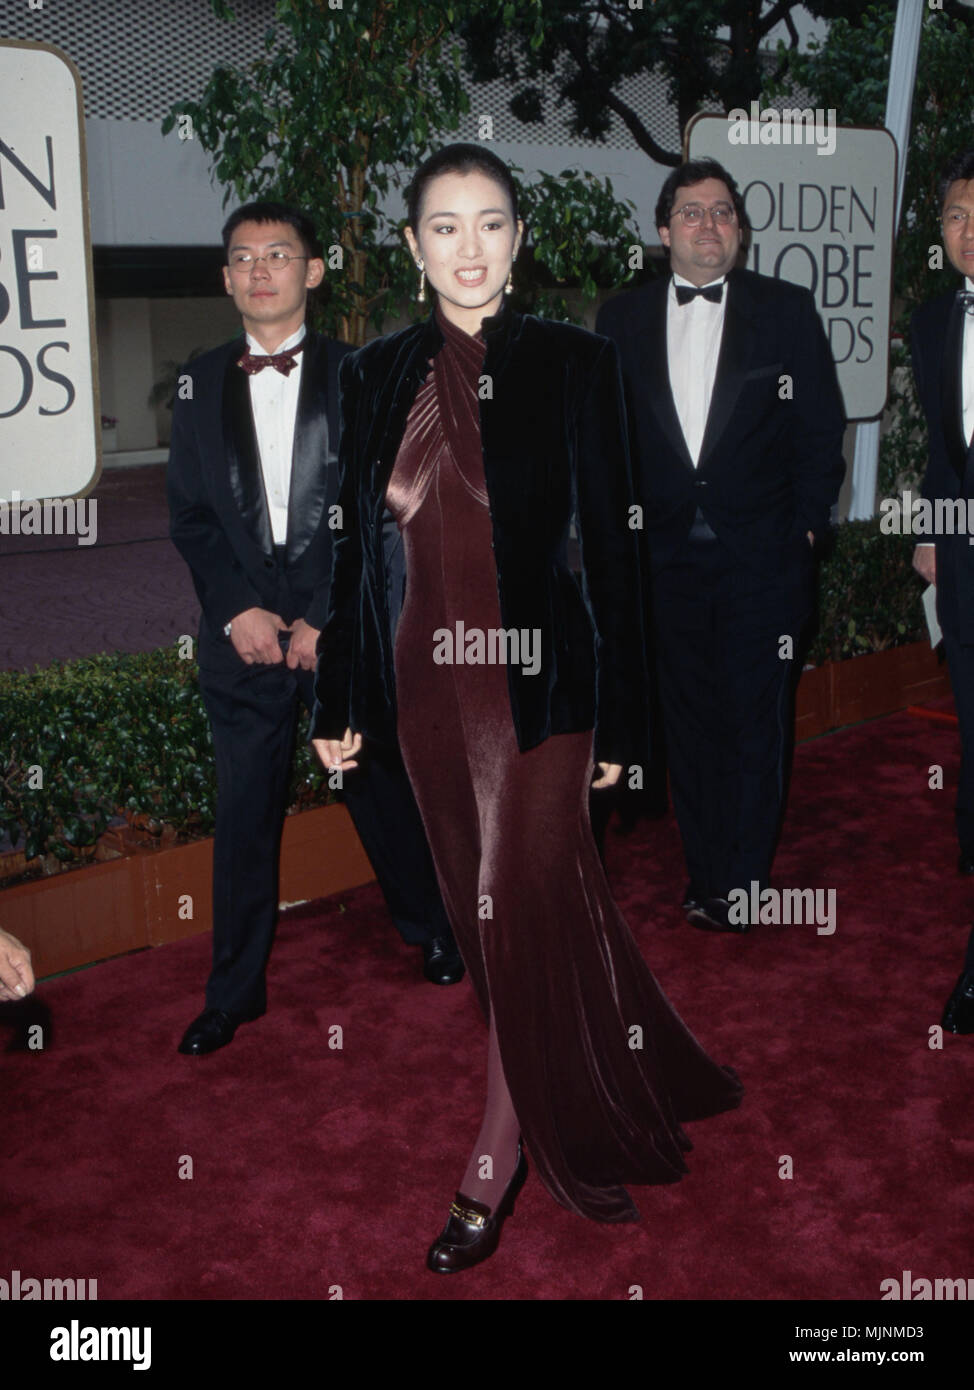 Gong Li --- ' Tsuni / USA 'Gong Li Gong Li Celebrities fashion / Full length from the Red Carpet-1994-2000, one person, Vertical, Best of, Hollywood Life, one person, Vertical, Best of, Hollywood Life, Event in Hollywood Life - California,  Red Carpet Event, Vertical, USA, Film Industry, Celebrities,  Photography, Bestof, Arts Culture and Entertainment, , , Topix - Stock Image